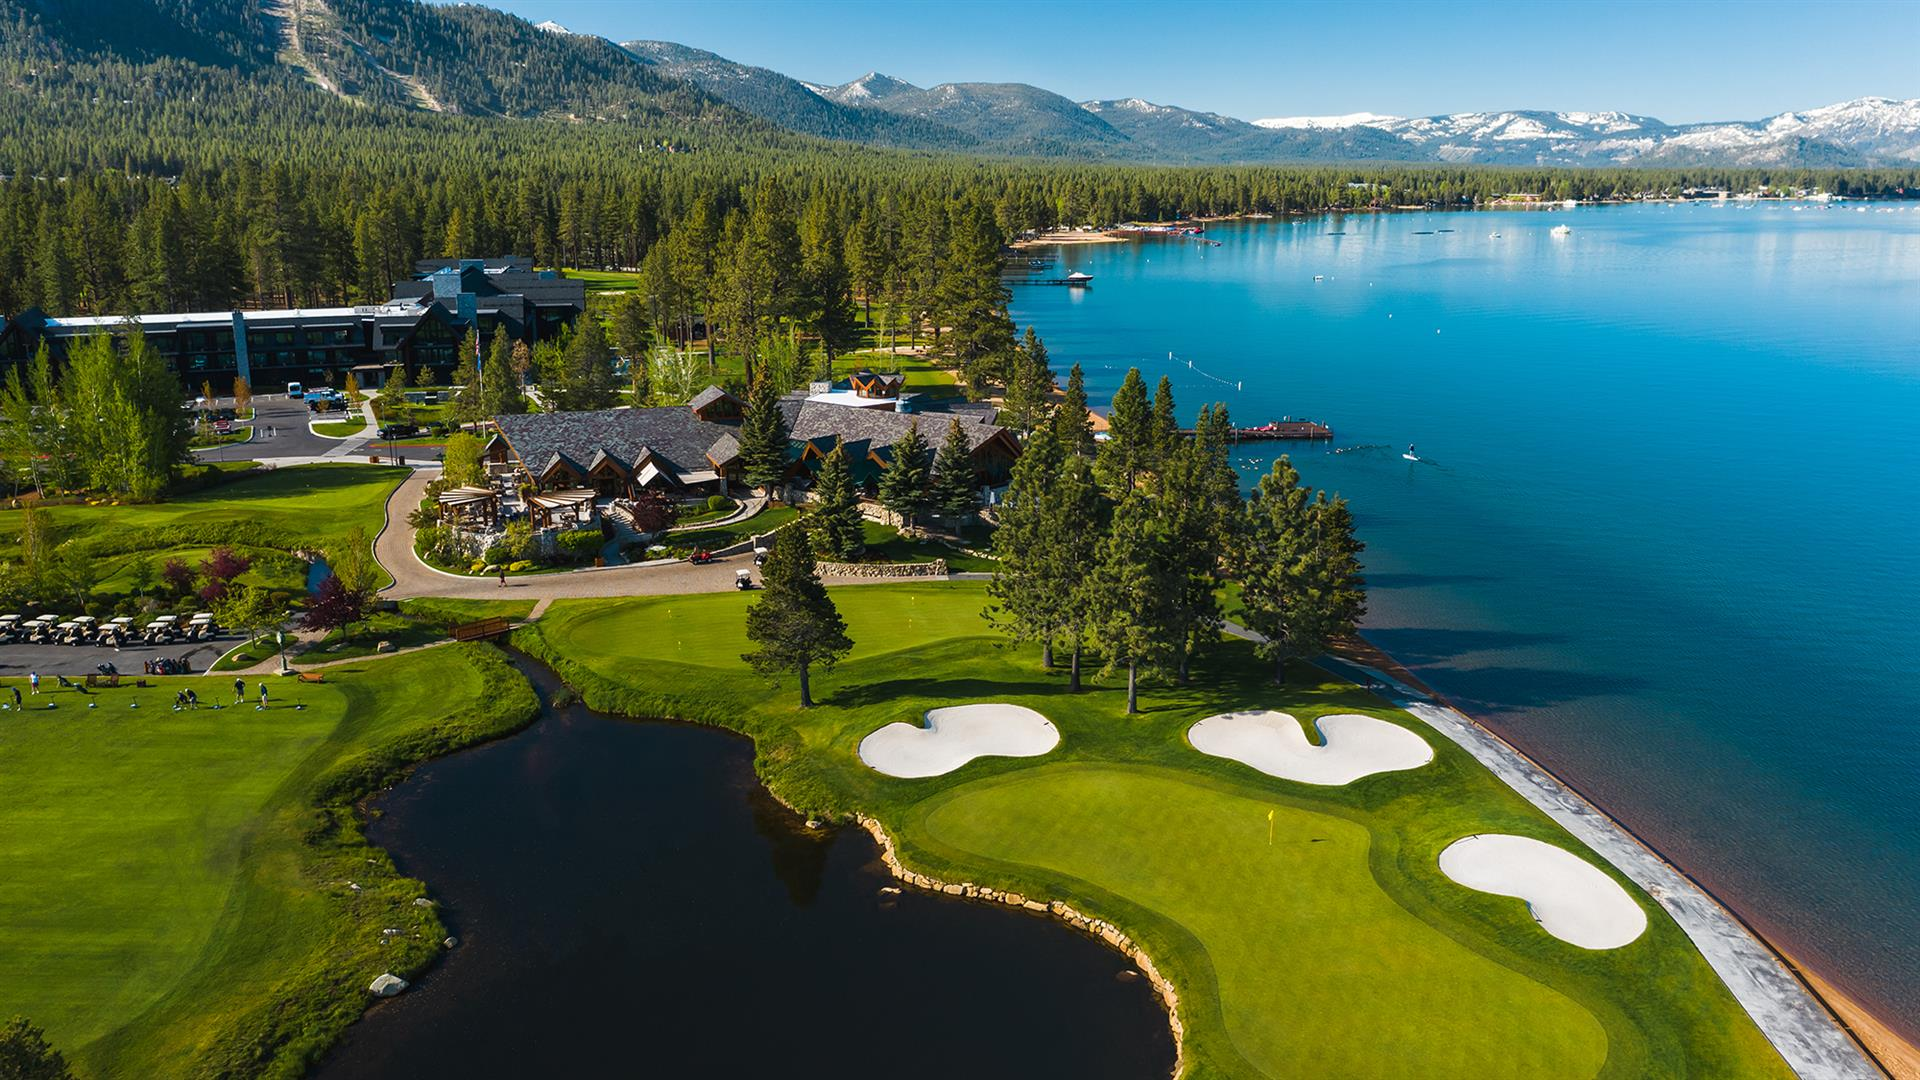 Meetings and events at Edgewood Tahoe, Stateline, NV, US